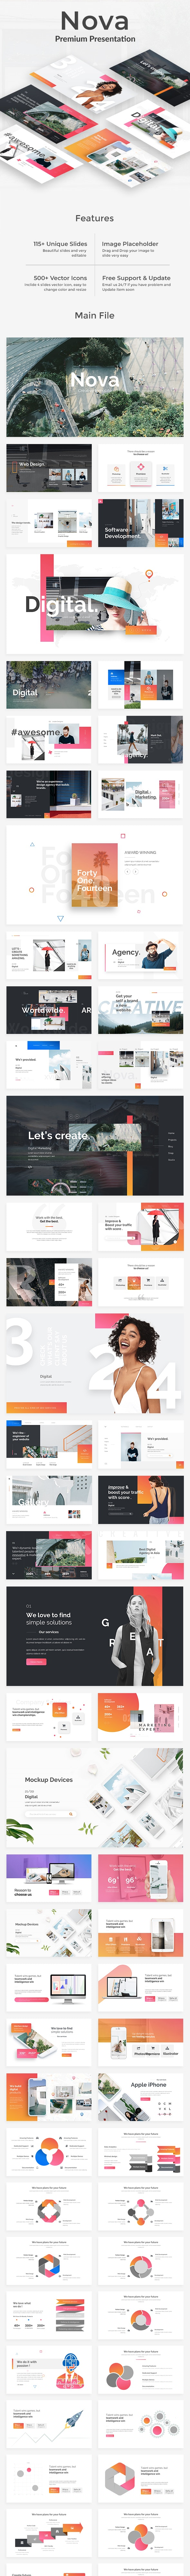 Nova Creative Project Powerpoint Template - Creative PowerPoint Templates